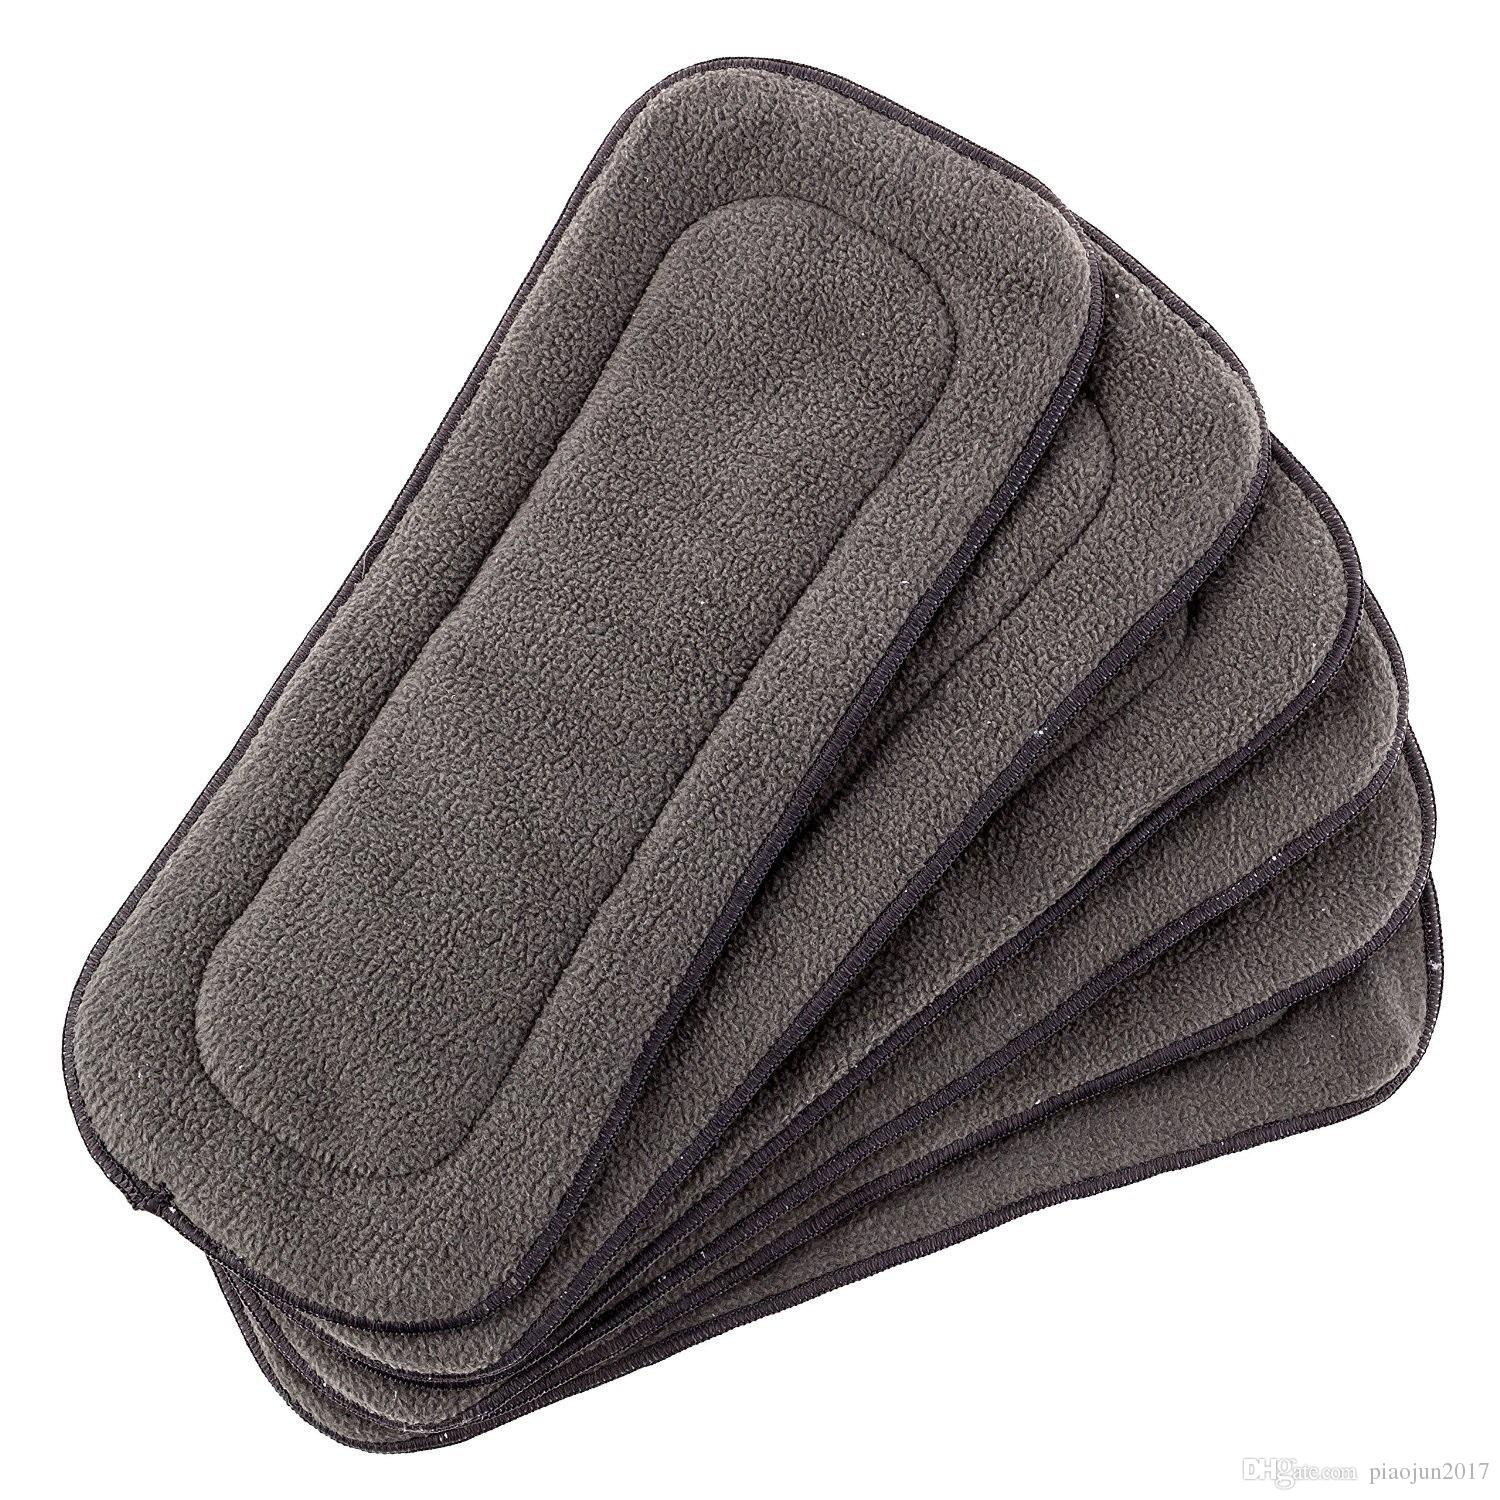 Baby 5 Layer Charcoal Bamboo Inserts Reusable Liners for Cloth Diapers